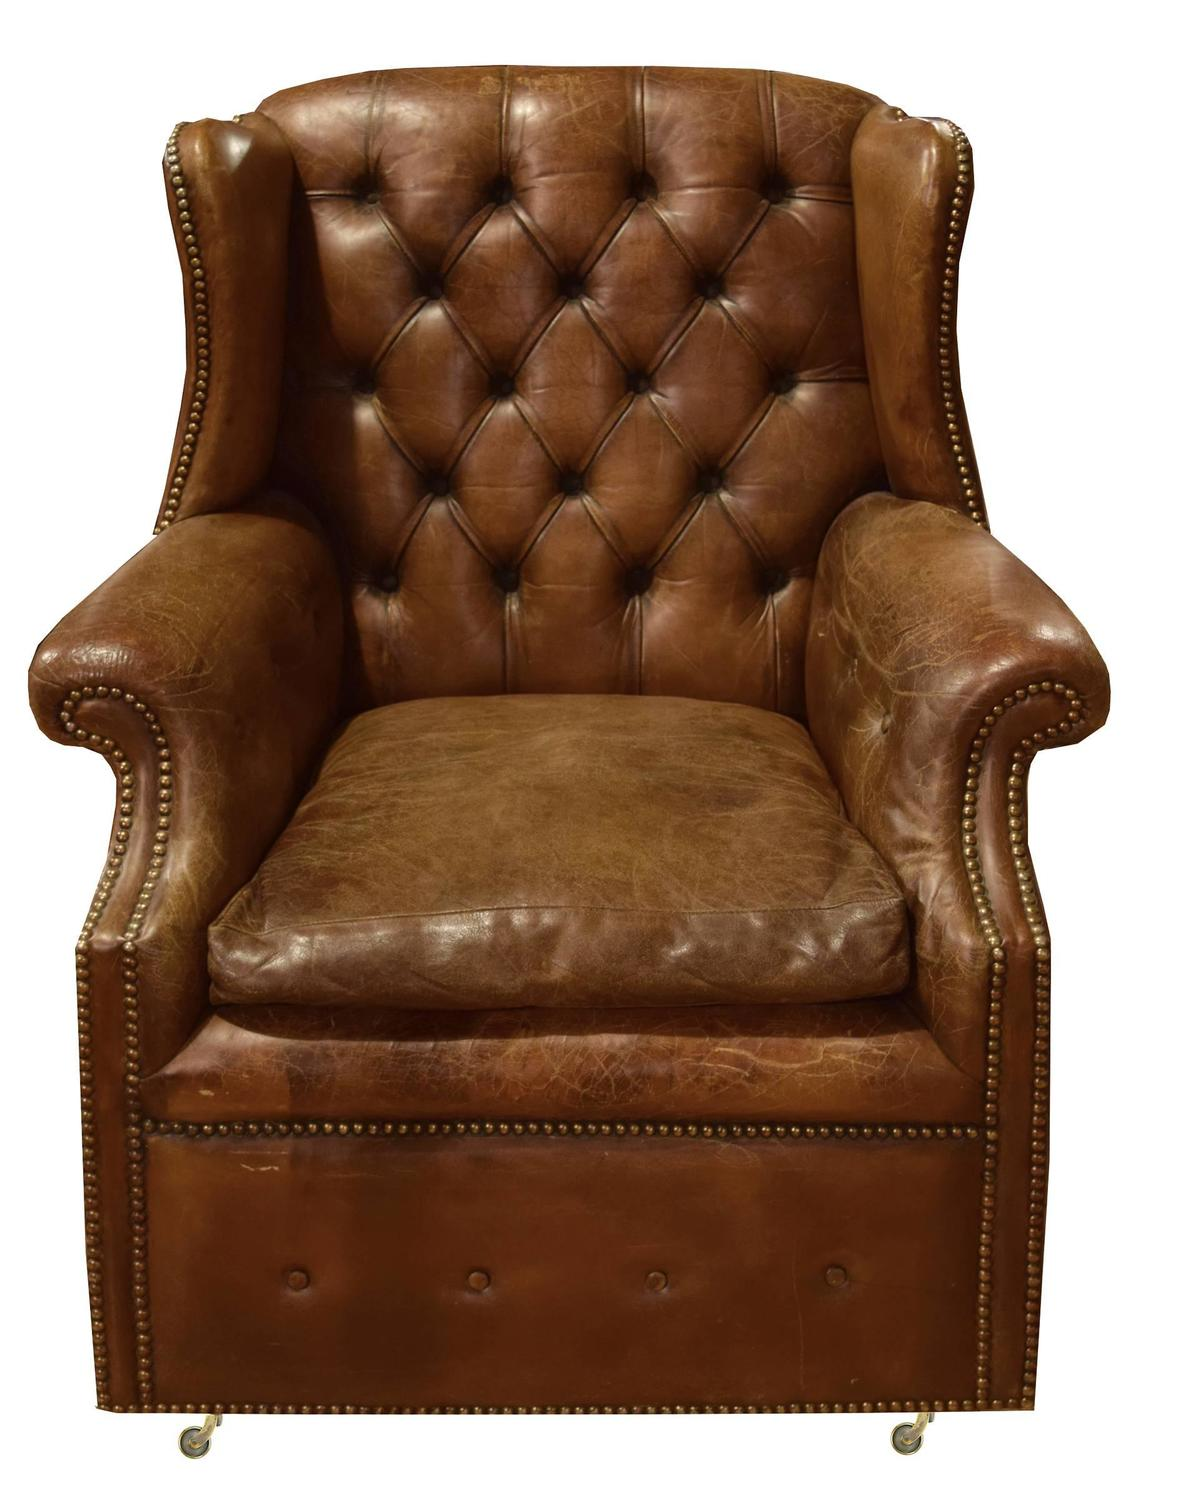 Leather Wing Back Chair Italian Tufted Leather Wing Chair For Sale At 1stdibs